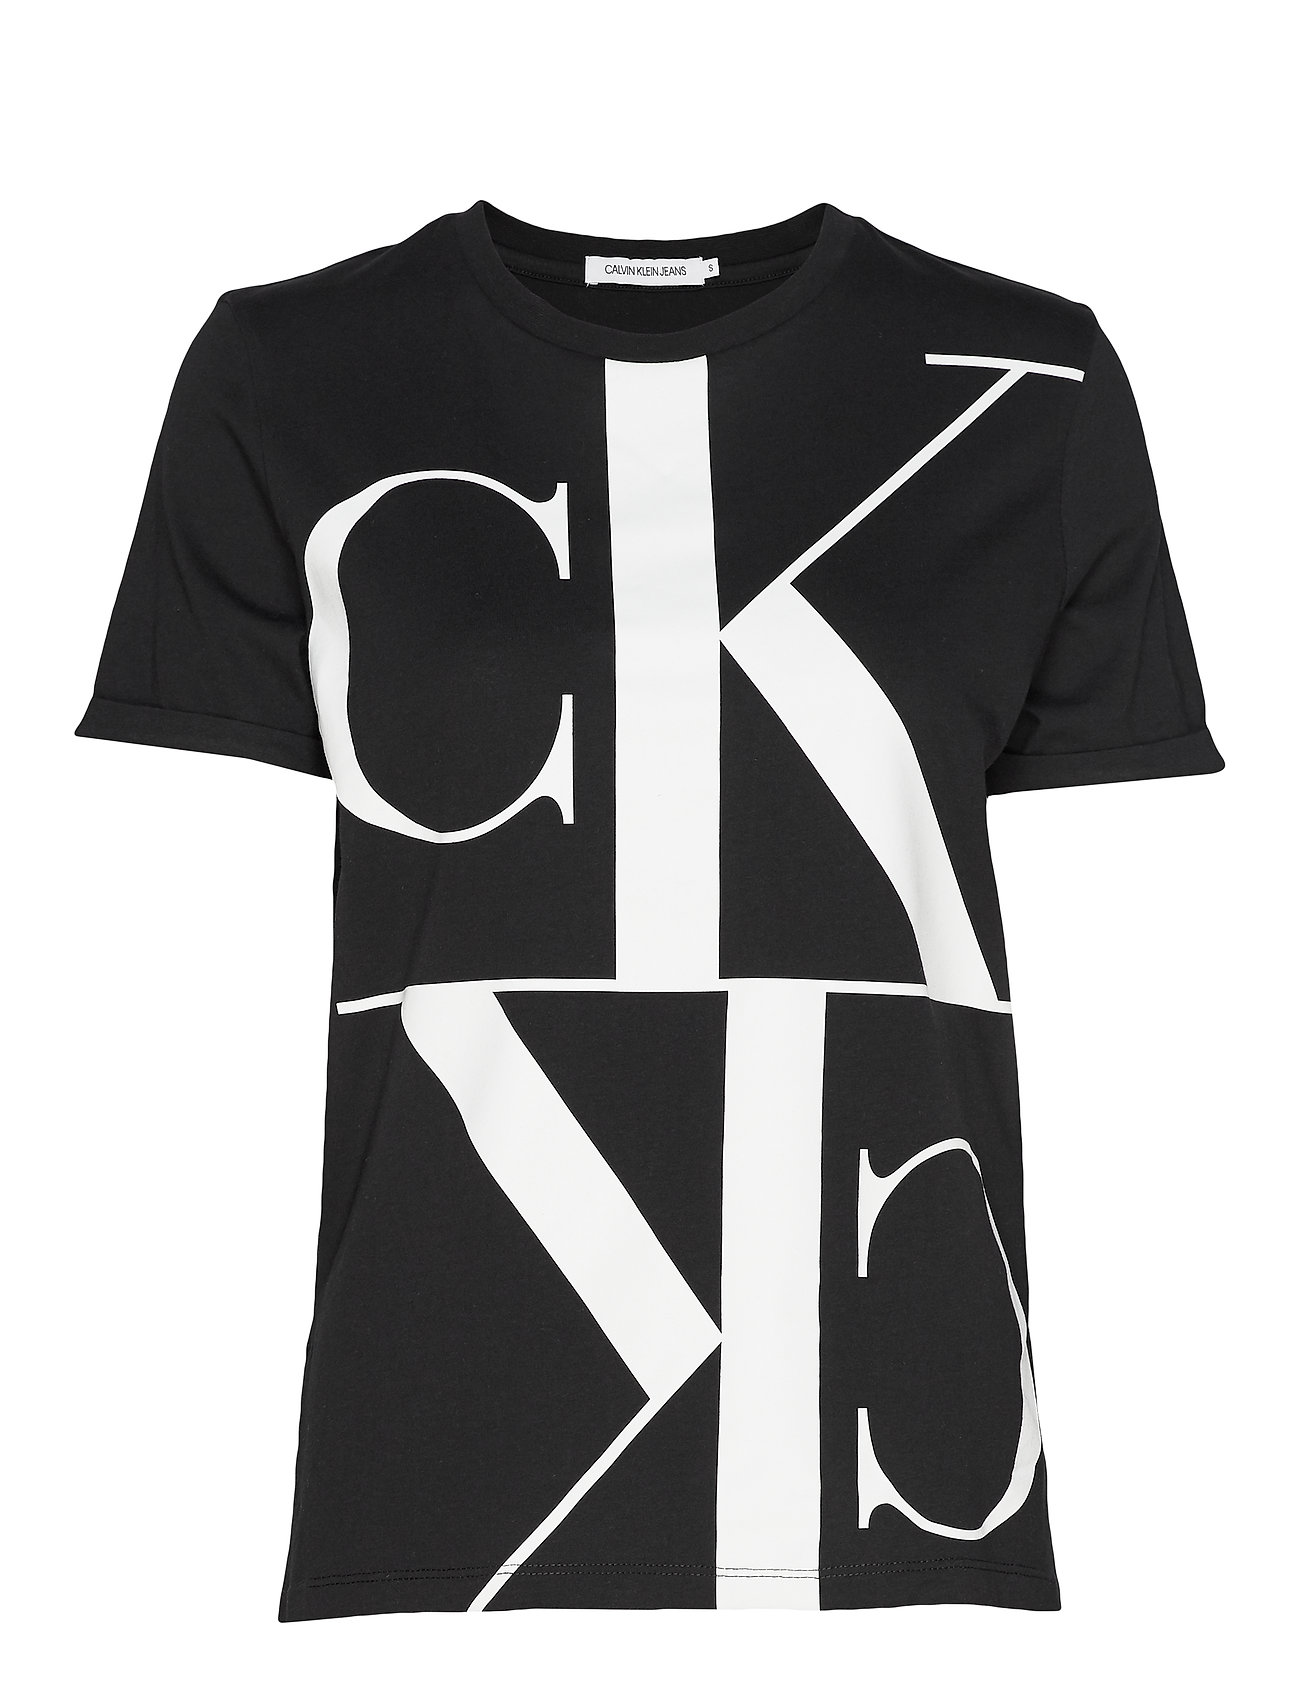 Calvin Klein Jeans MIRRORED MONOGRAM STRAIGHT TEE - CK BLACK